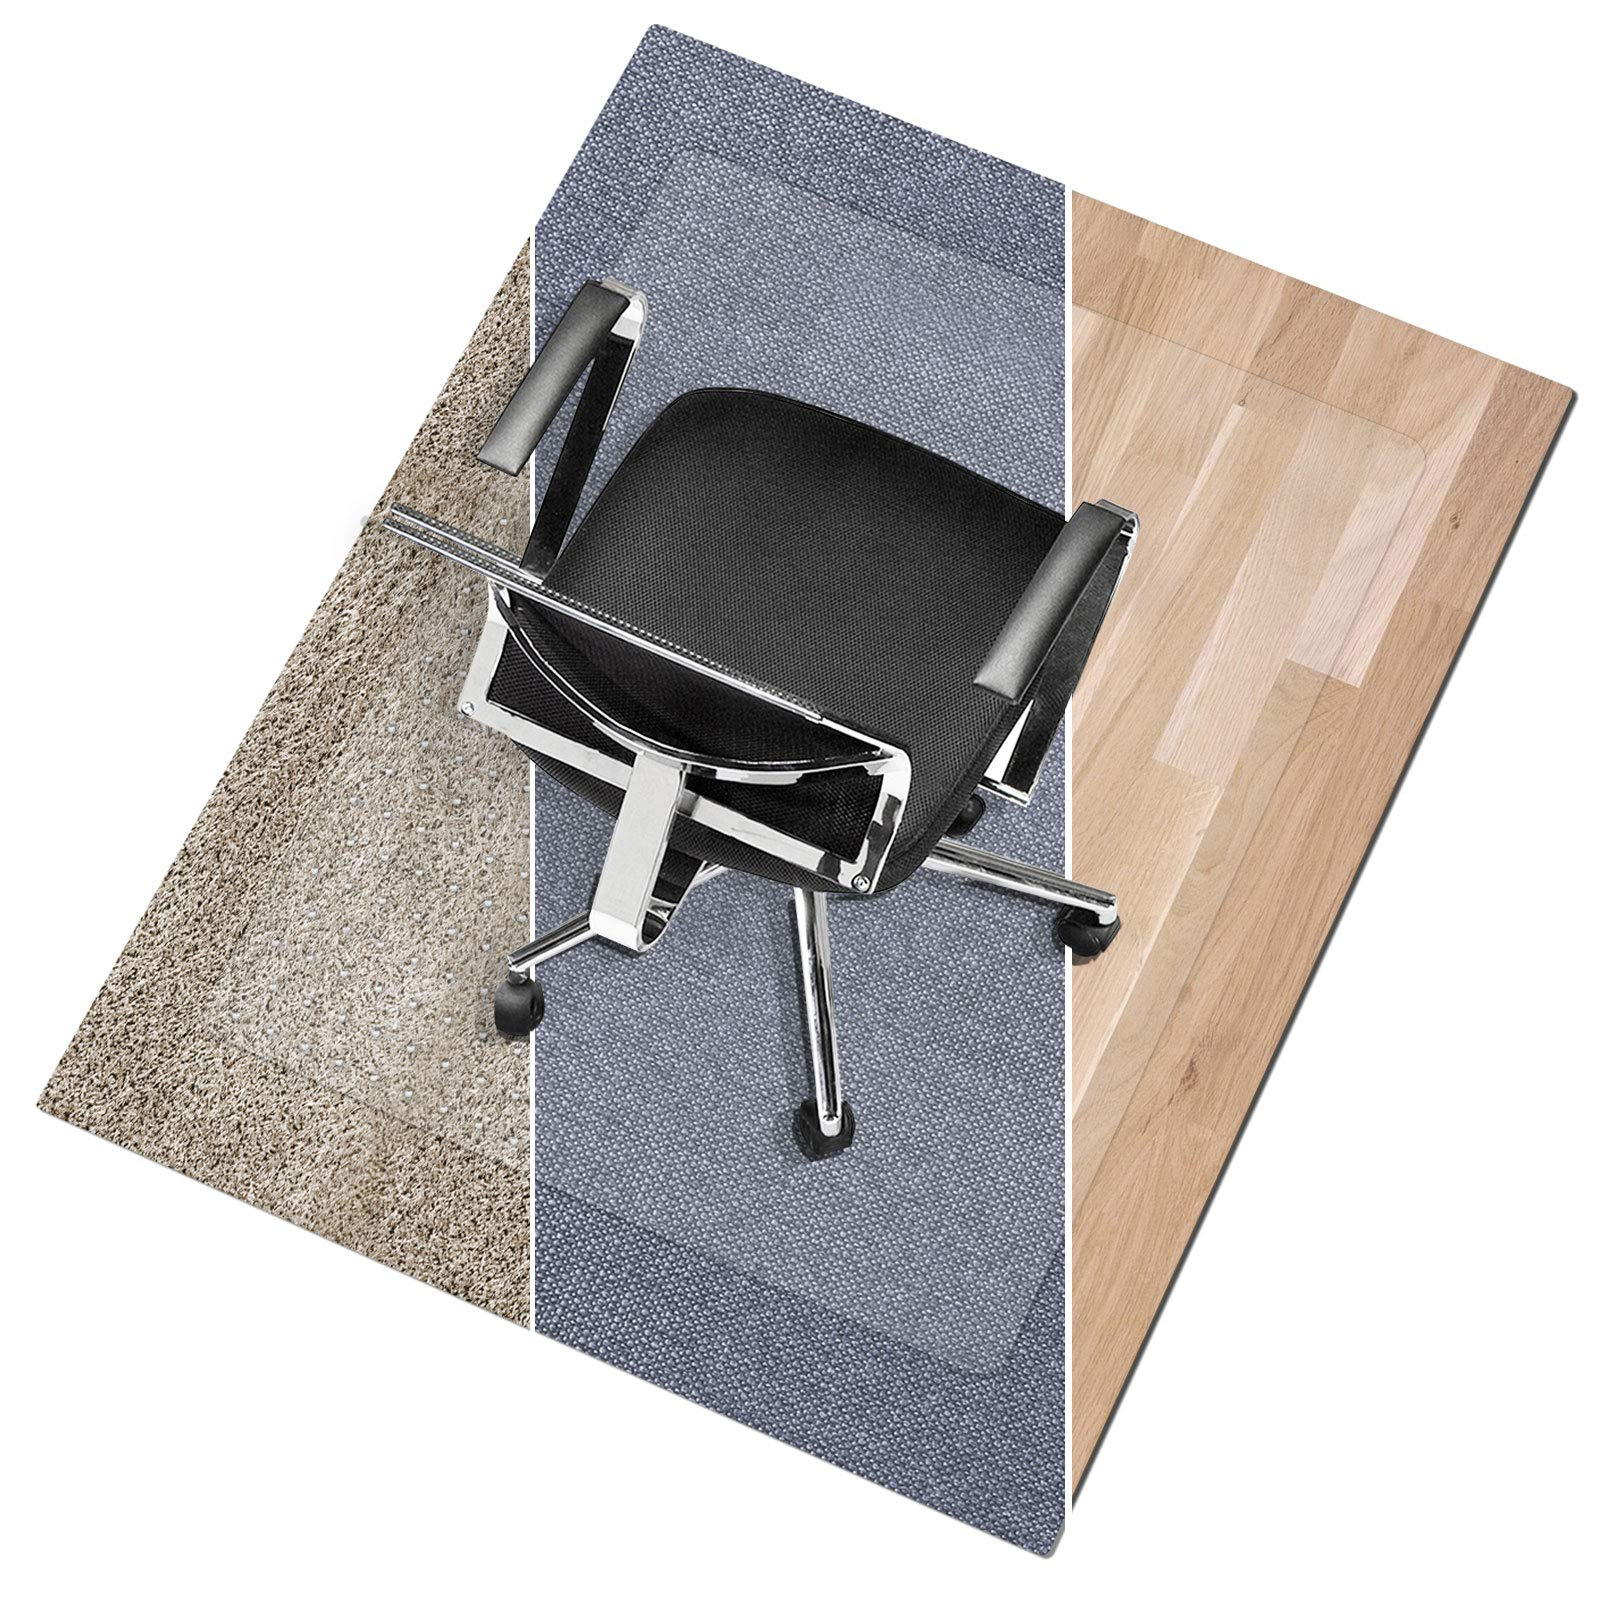 Office Marshal Polycarbonate Chair Mat for Medium Pile Carpet Floors, 36'' x 48'' - Multiple Sizes - Clear, Studded, Carpet Floor Protection Mat by Office Marshal